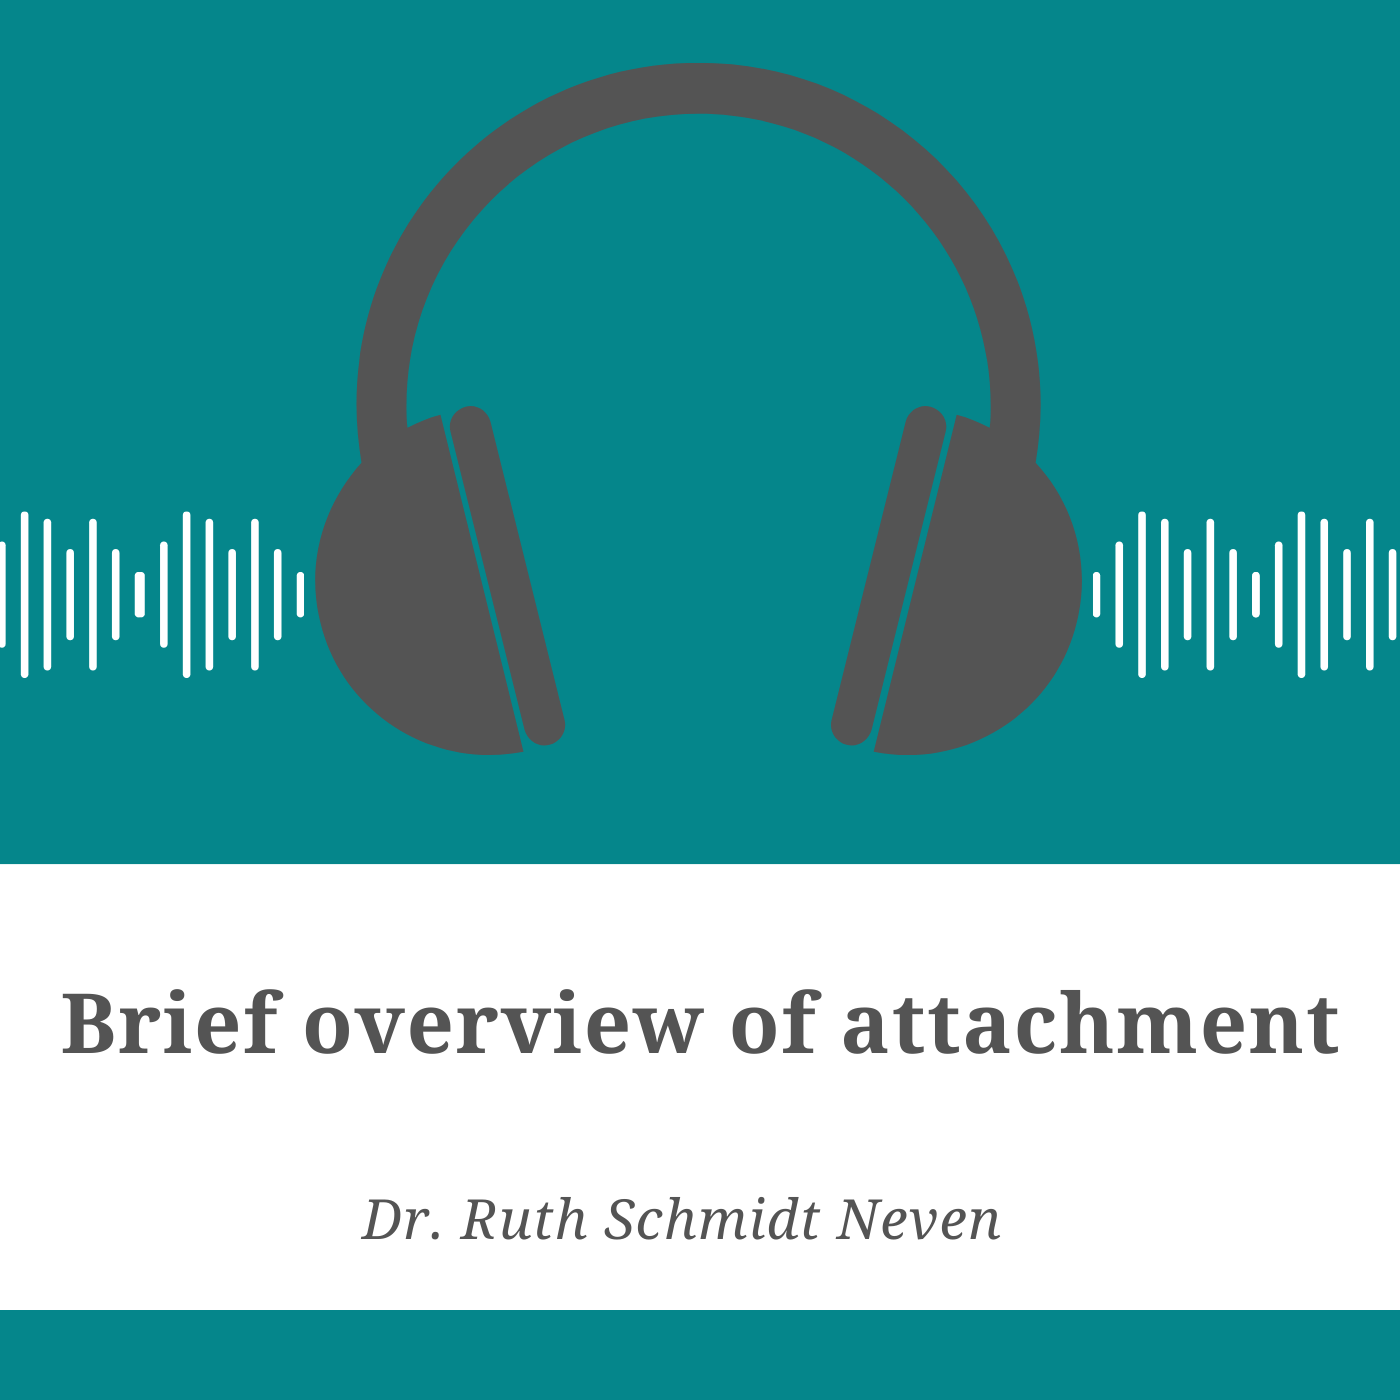 A Brief Overview of Attachment